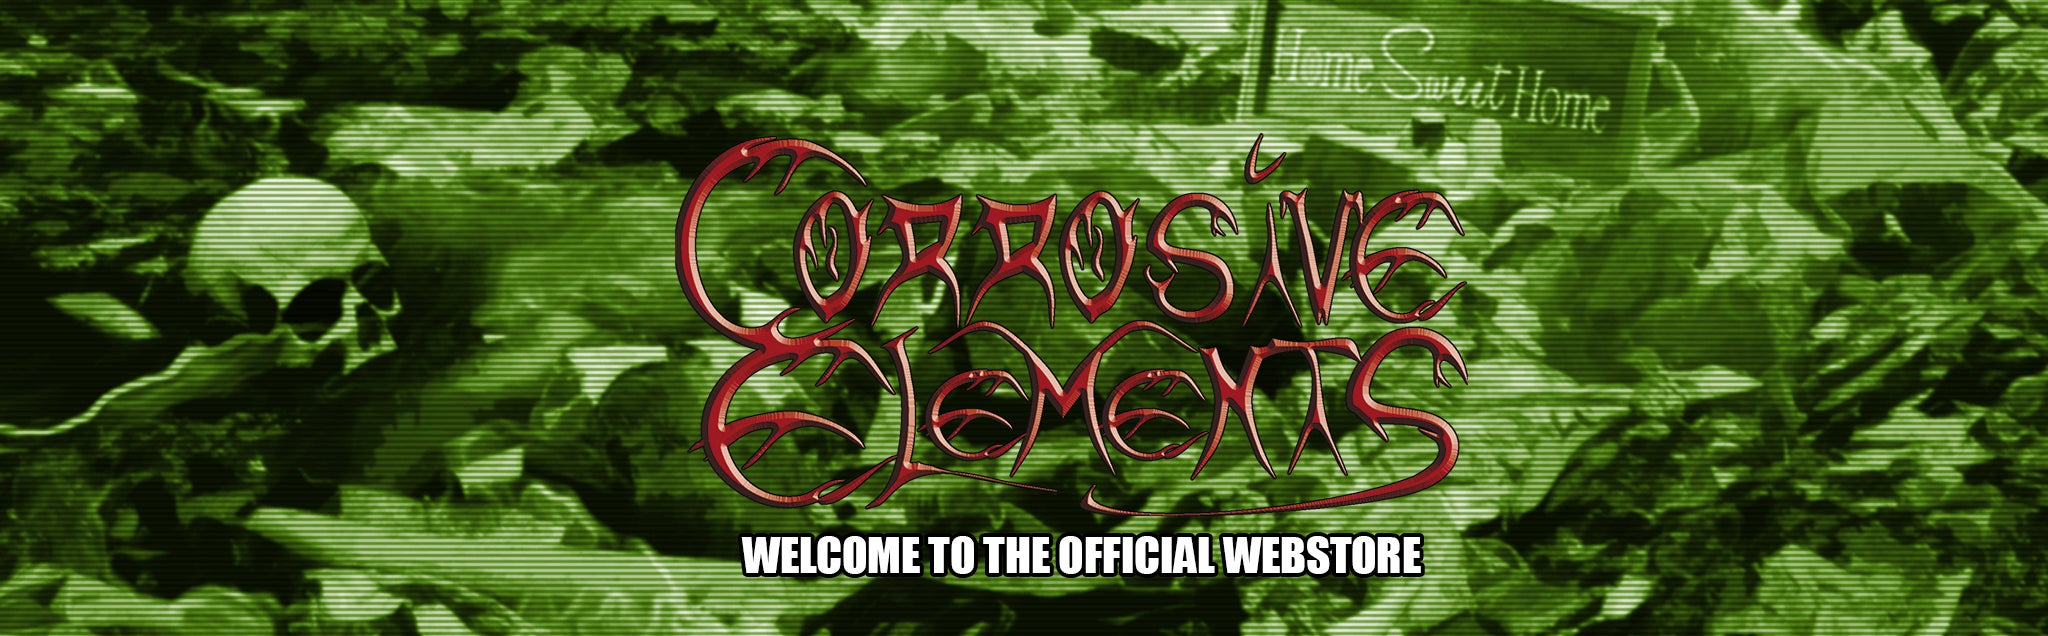 Corrosive Elements Official Webstore